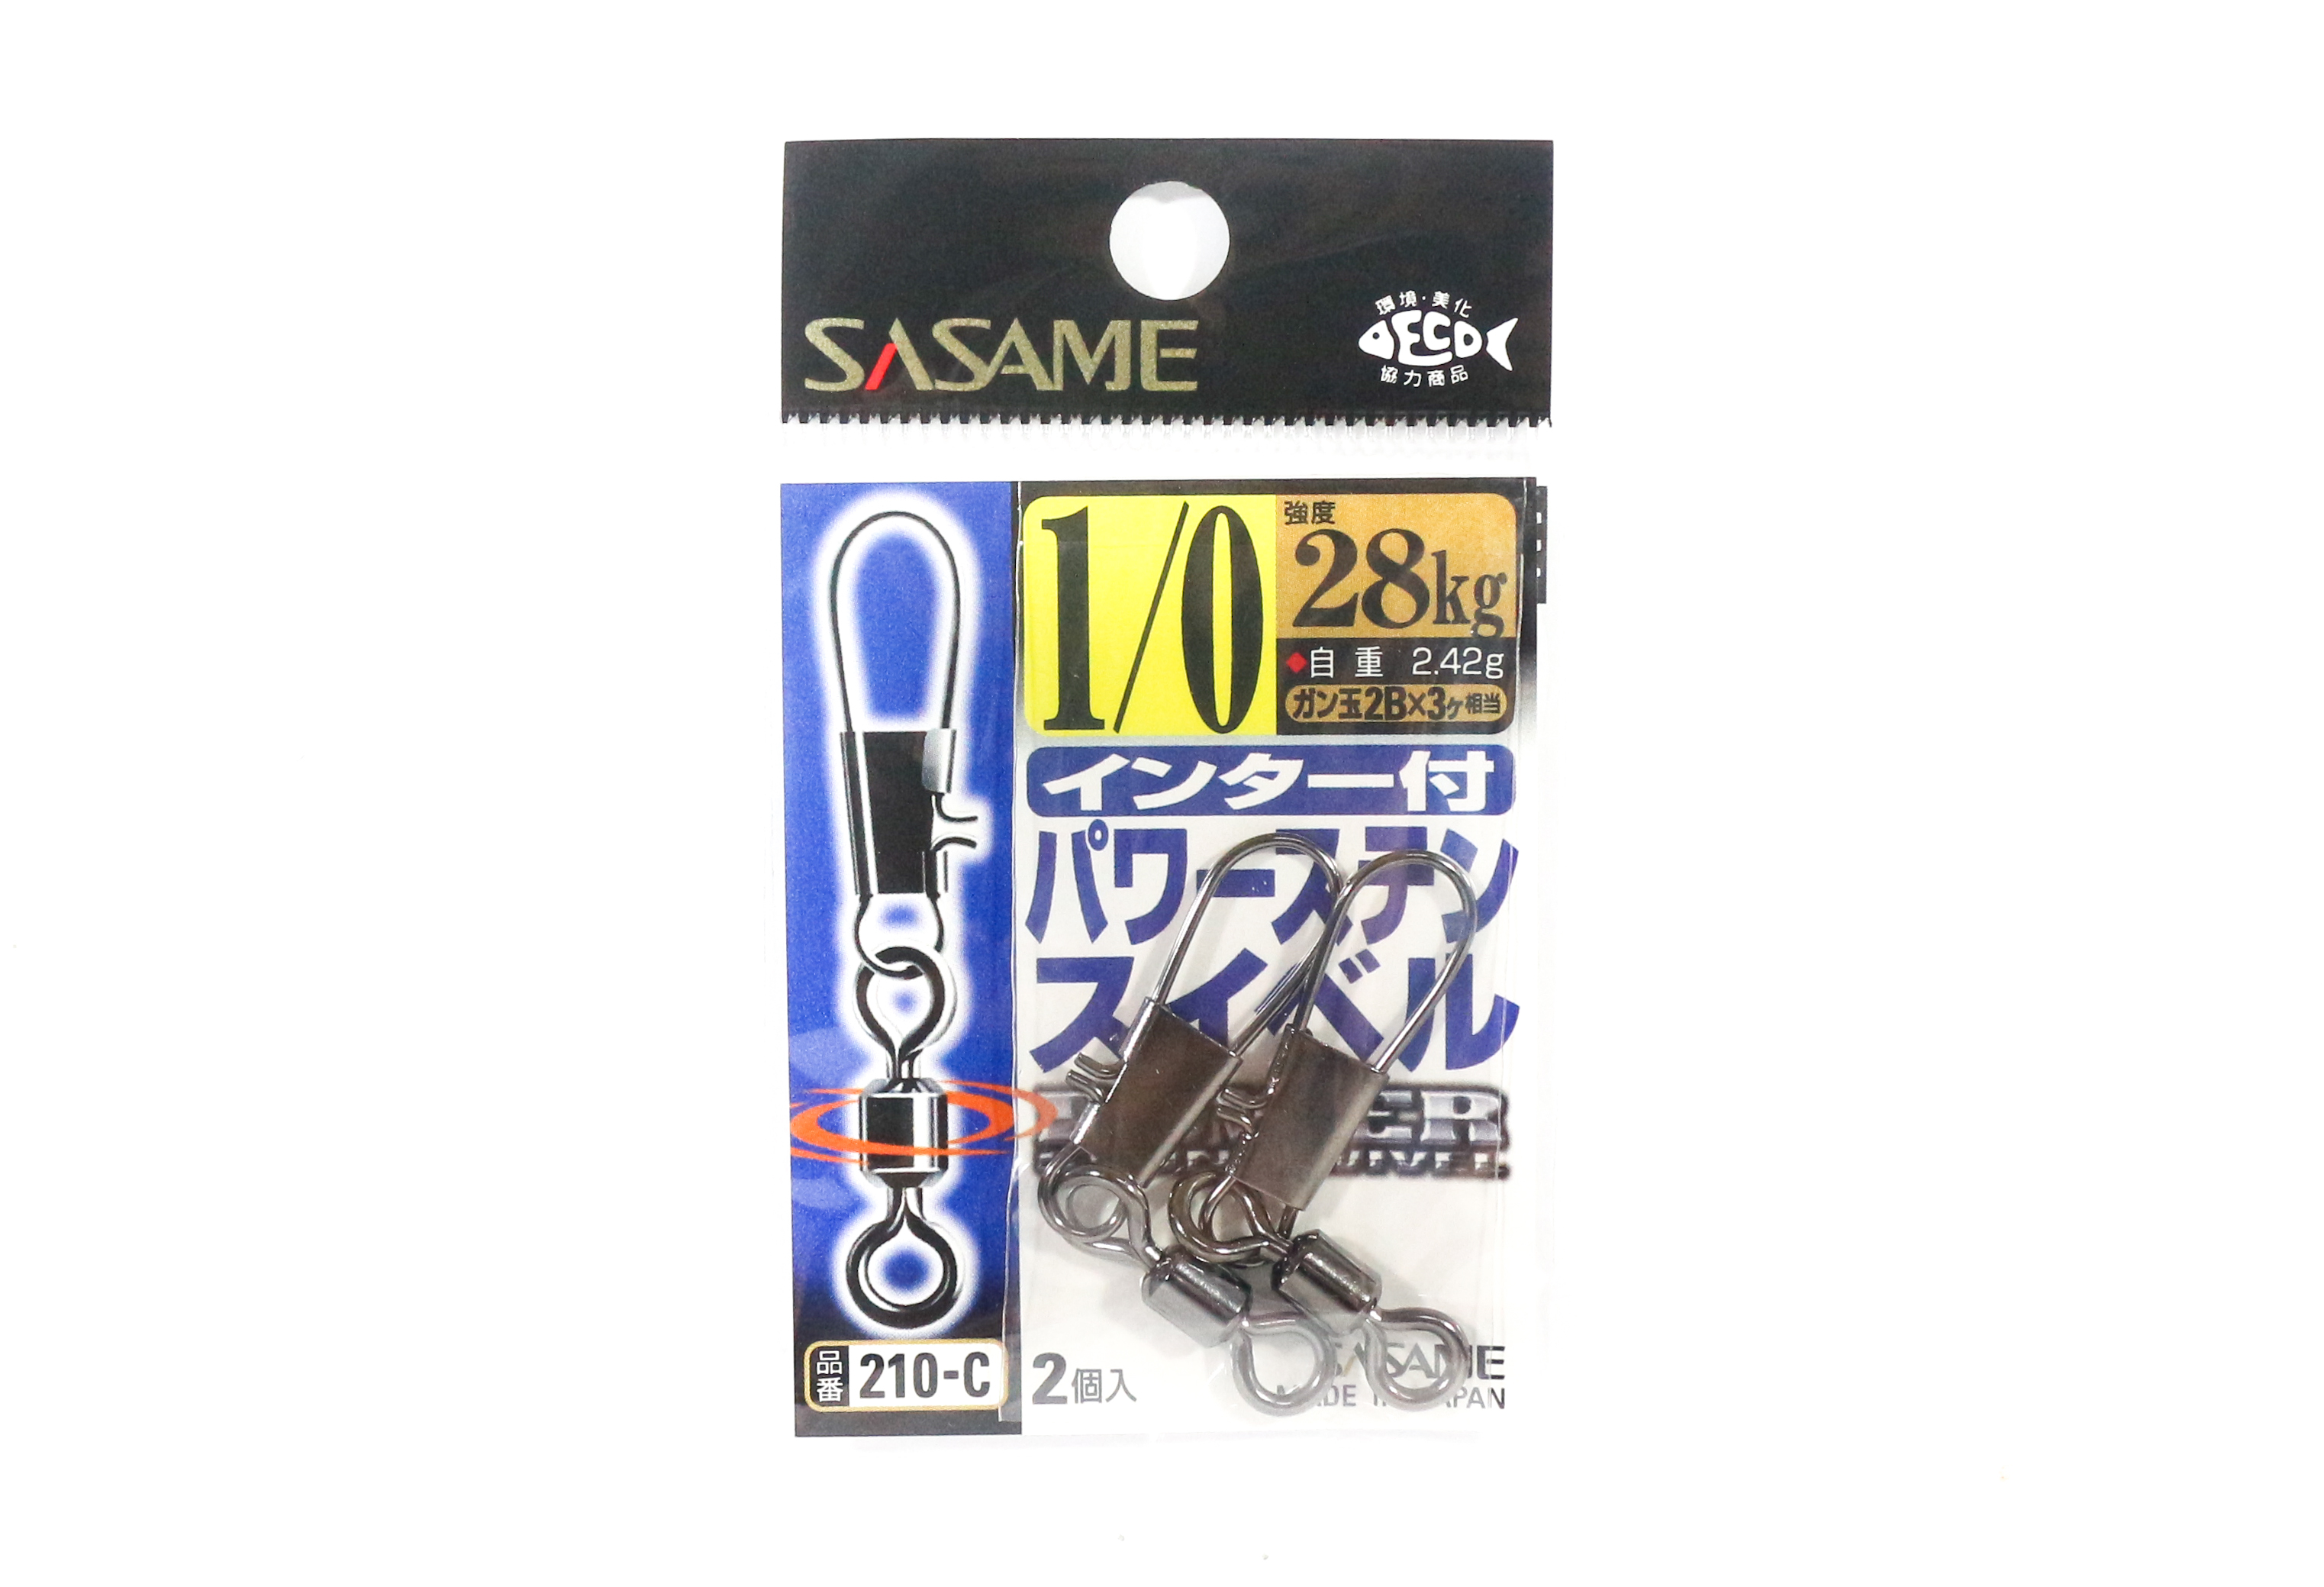 Sasame 210-C Power Stain Snap Swivel Smooth Spin Black Size 1/0 (1232)